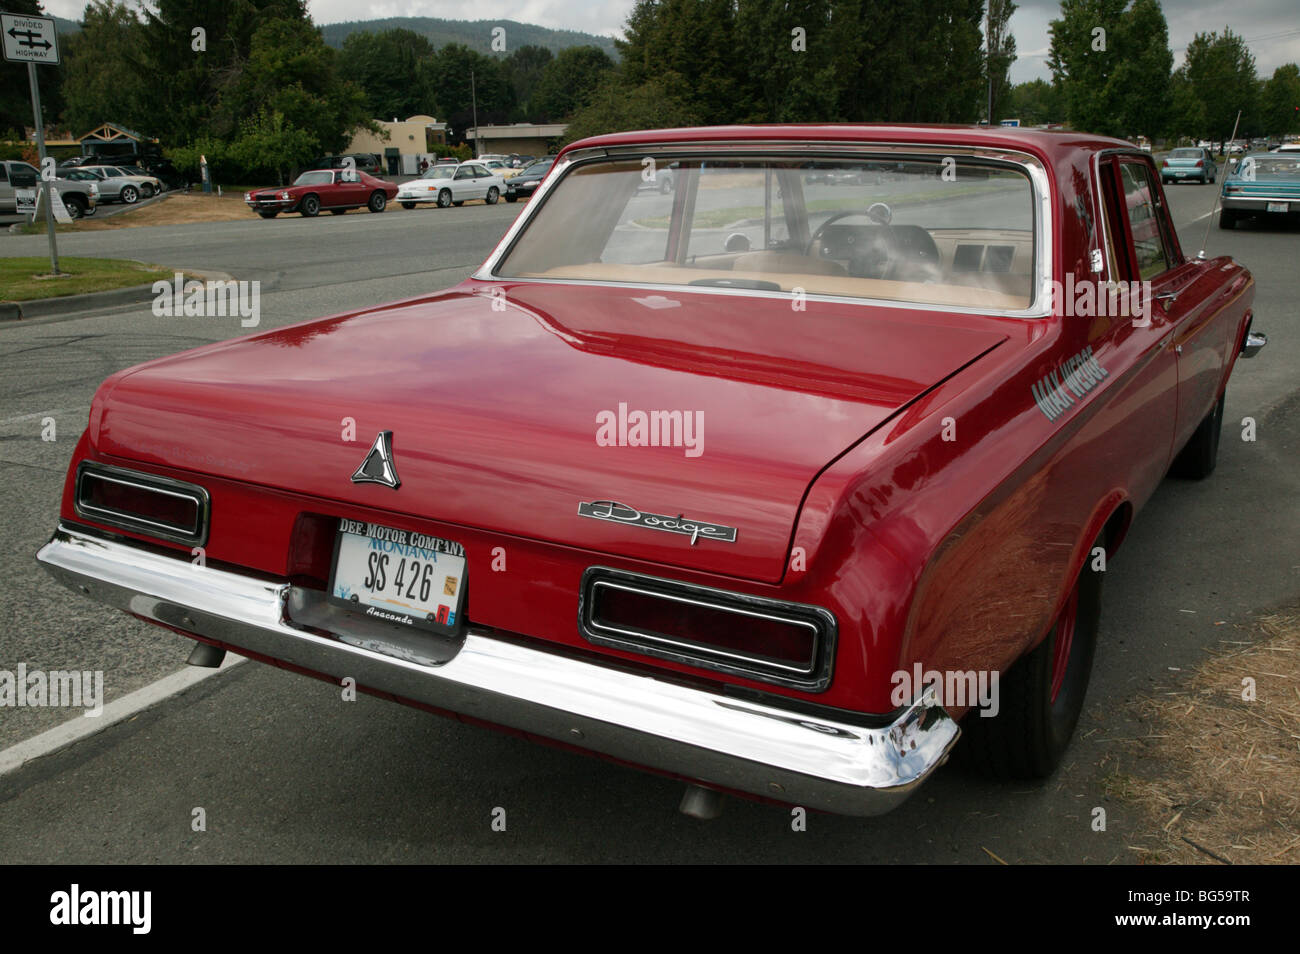 Rear View Of A S Dodge Max Wedge Sedan On Show At The